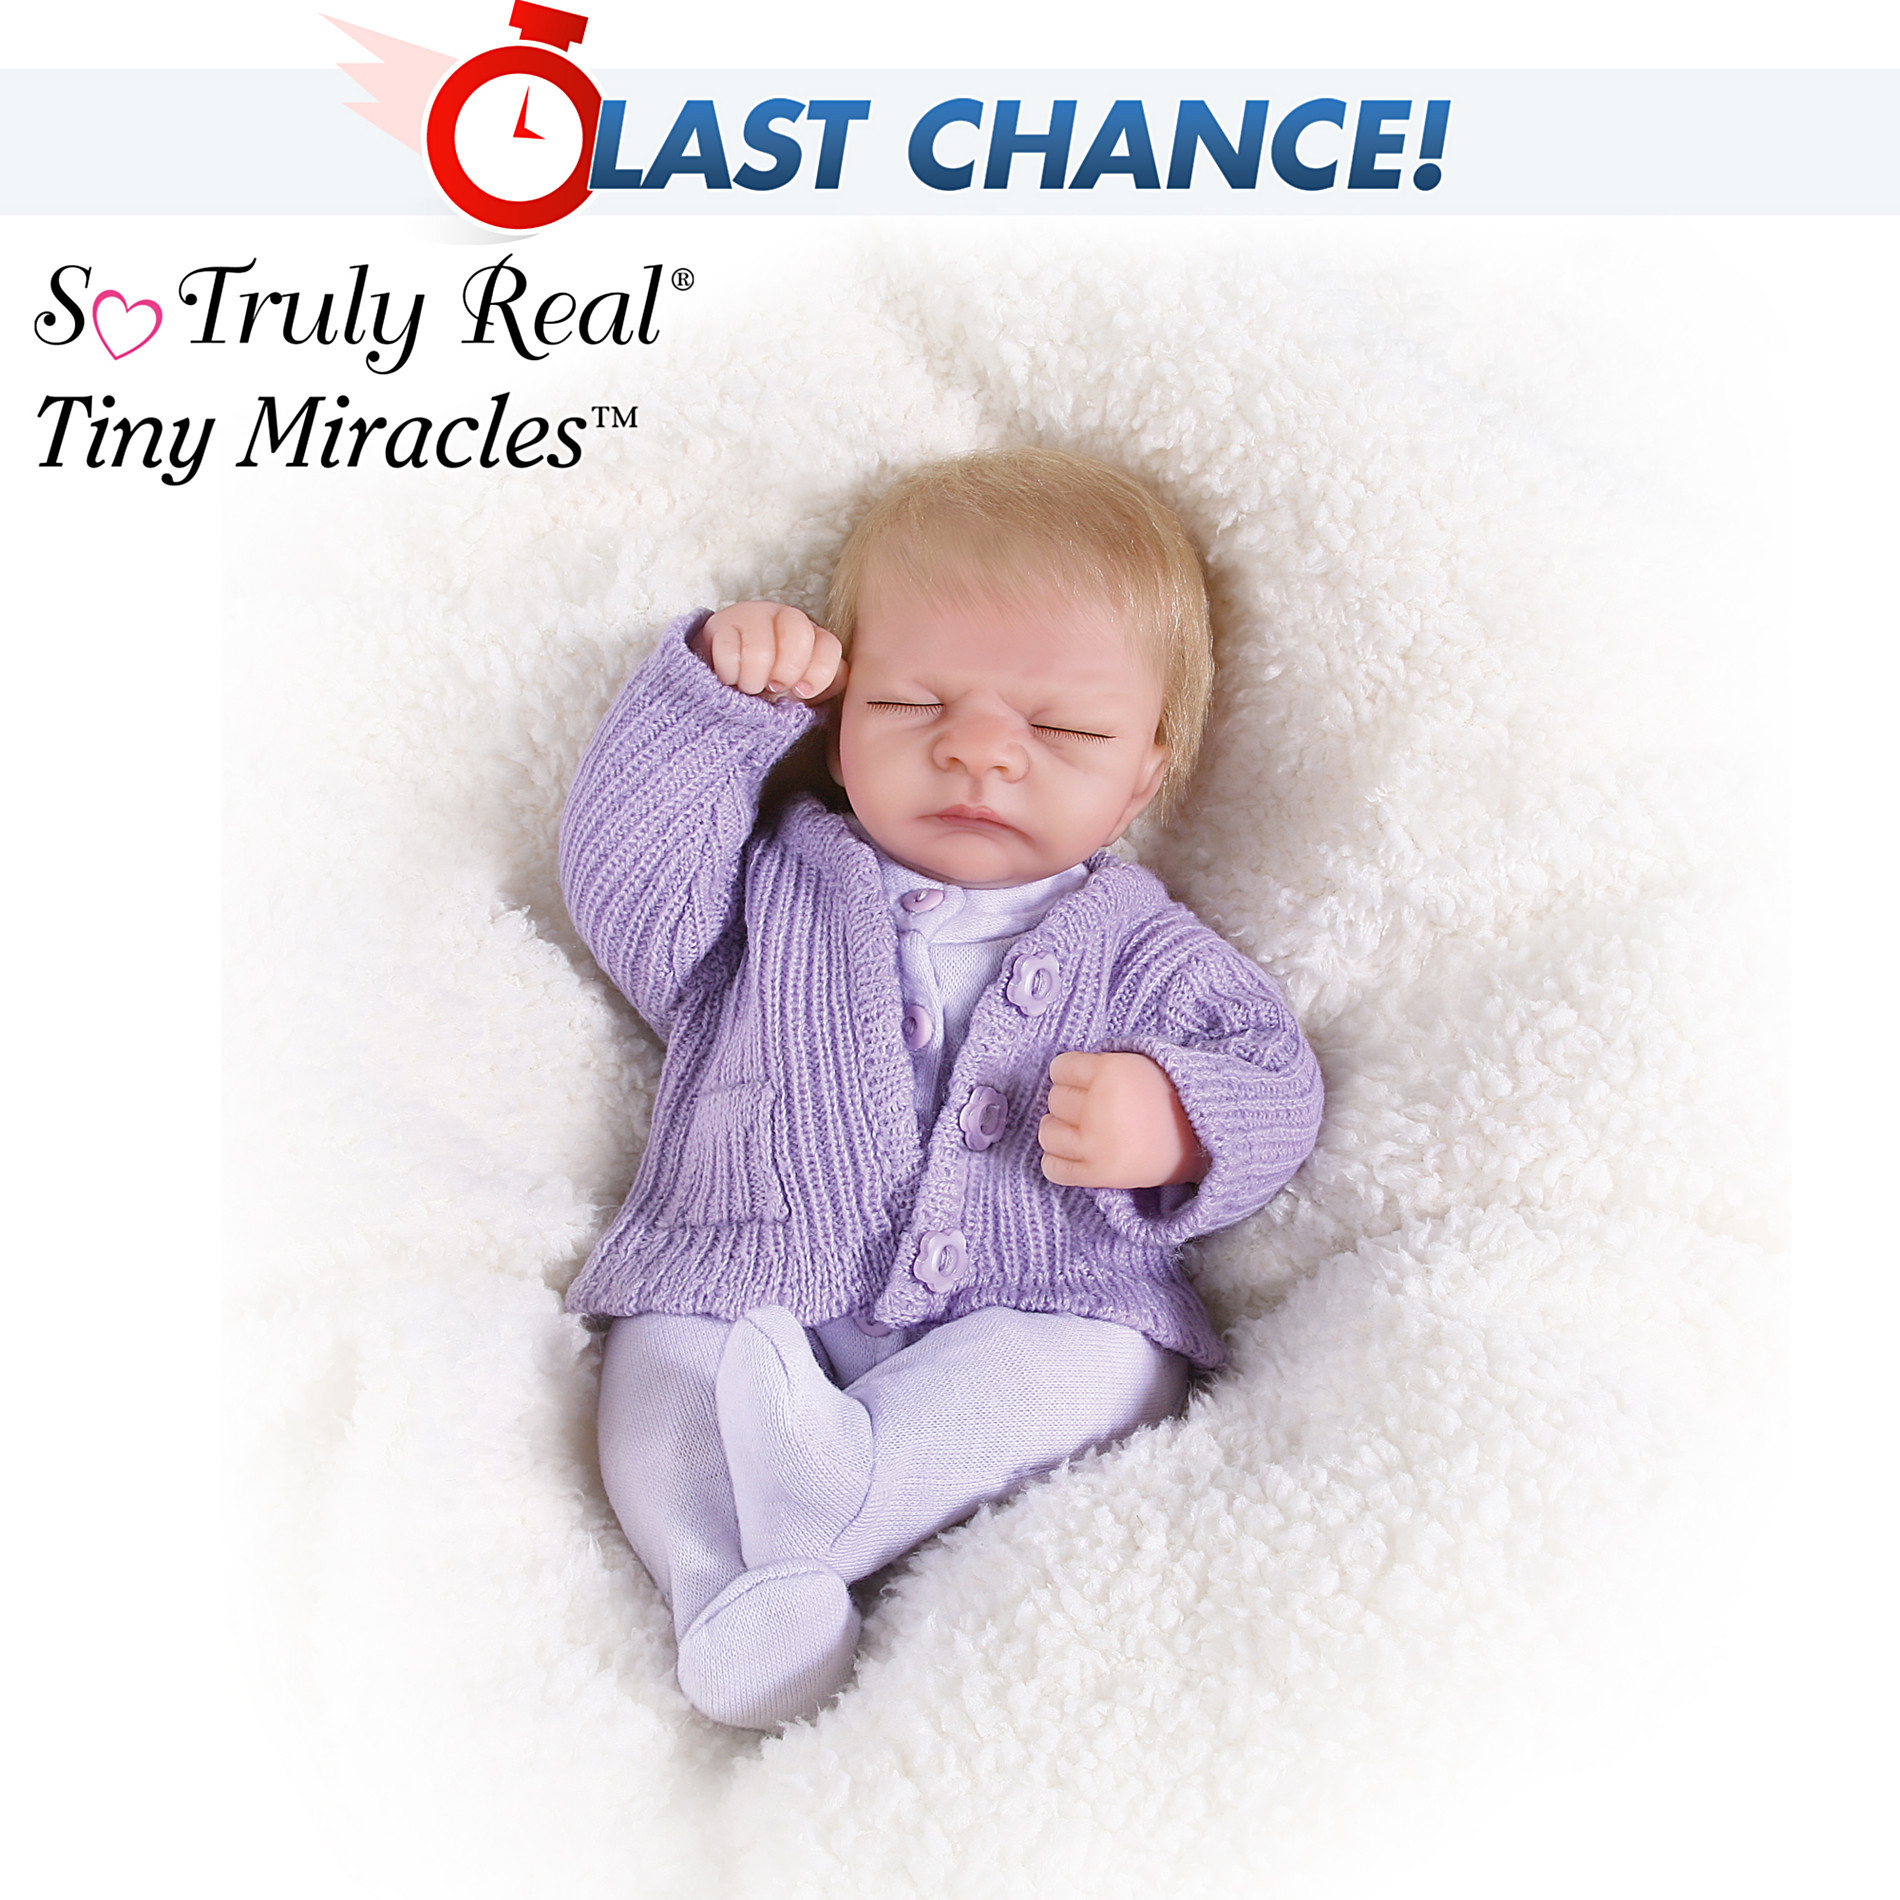 The Ashton-Drake Galleries Tiny Miracles Emma Miniature Lifelike Baby Girl Doll: So Truly Real at Sears.com